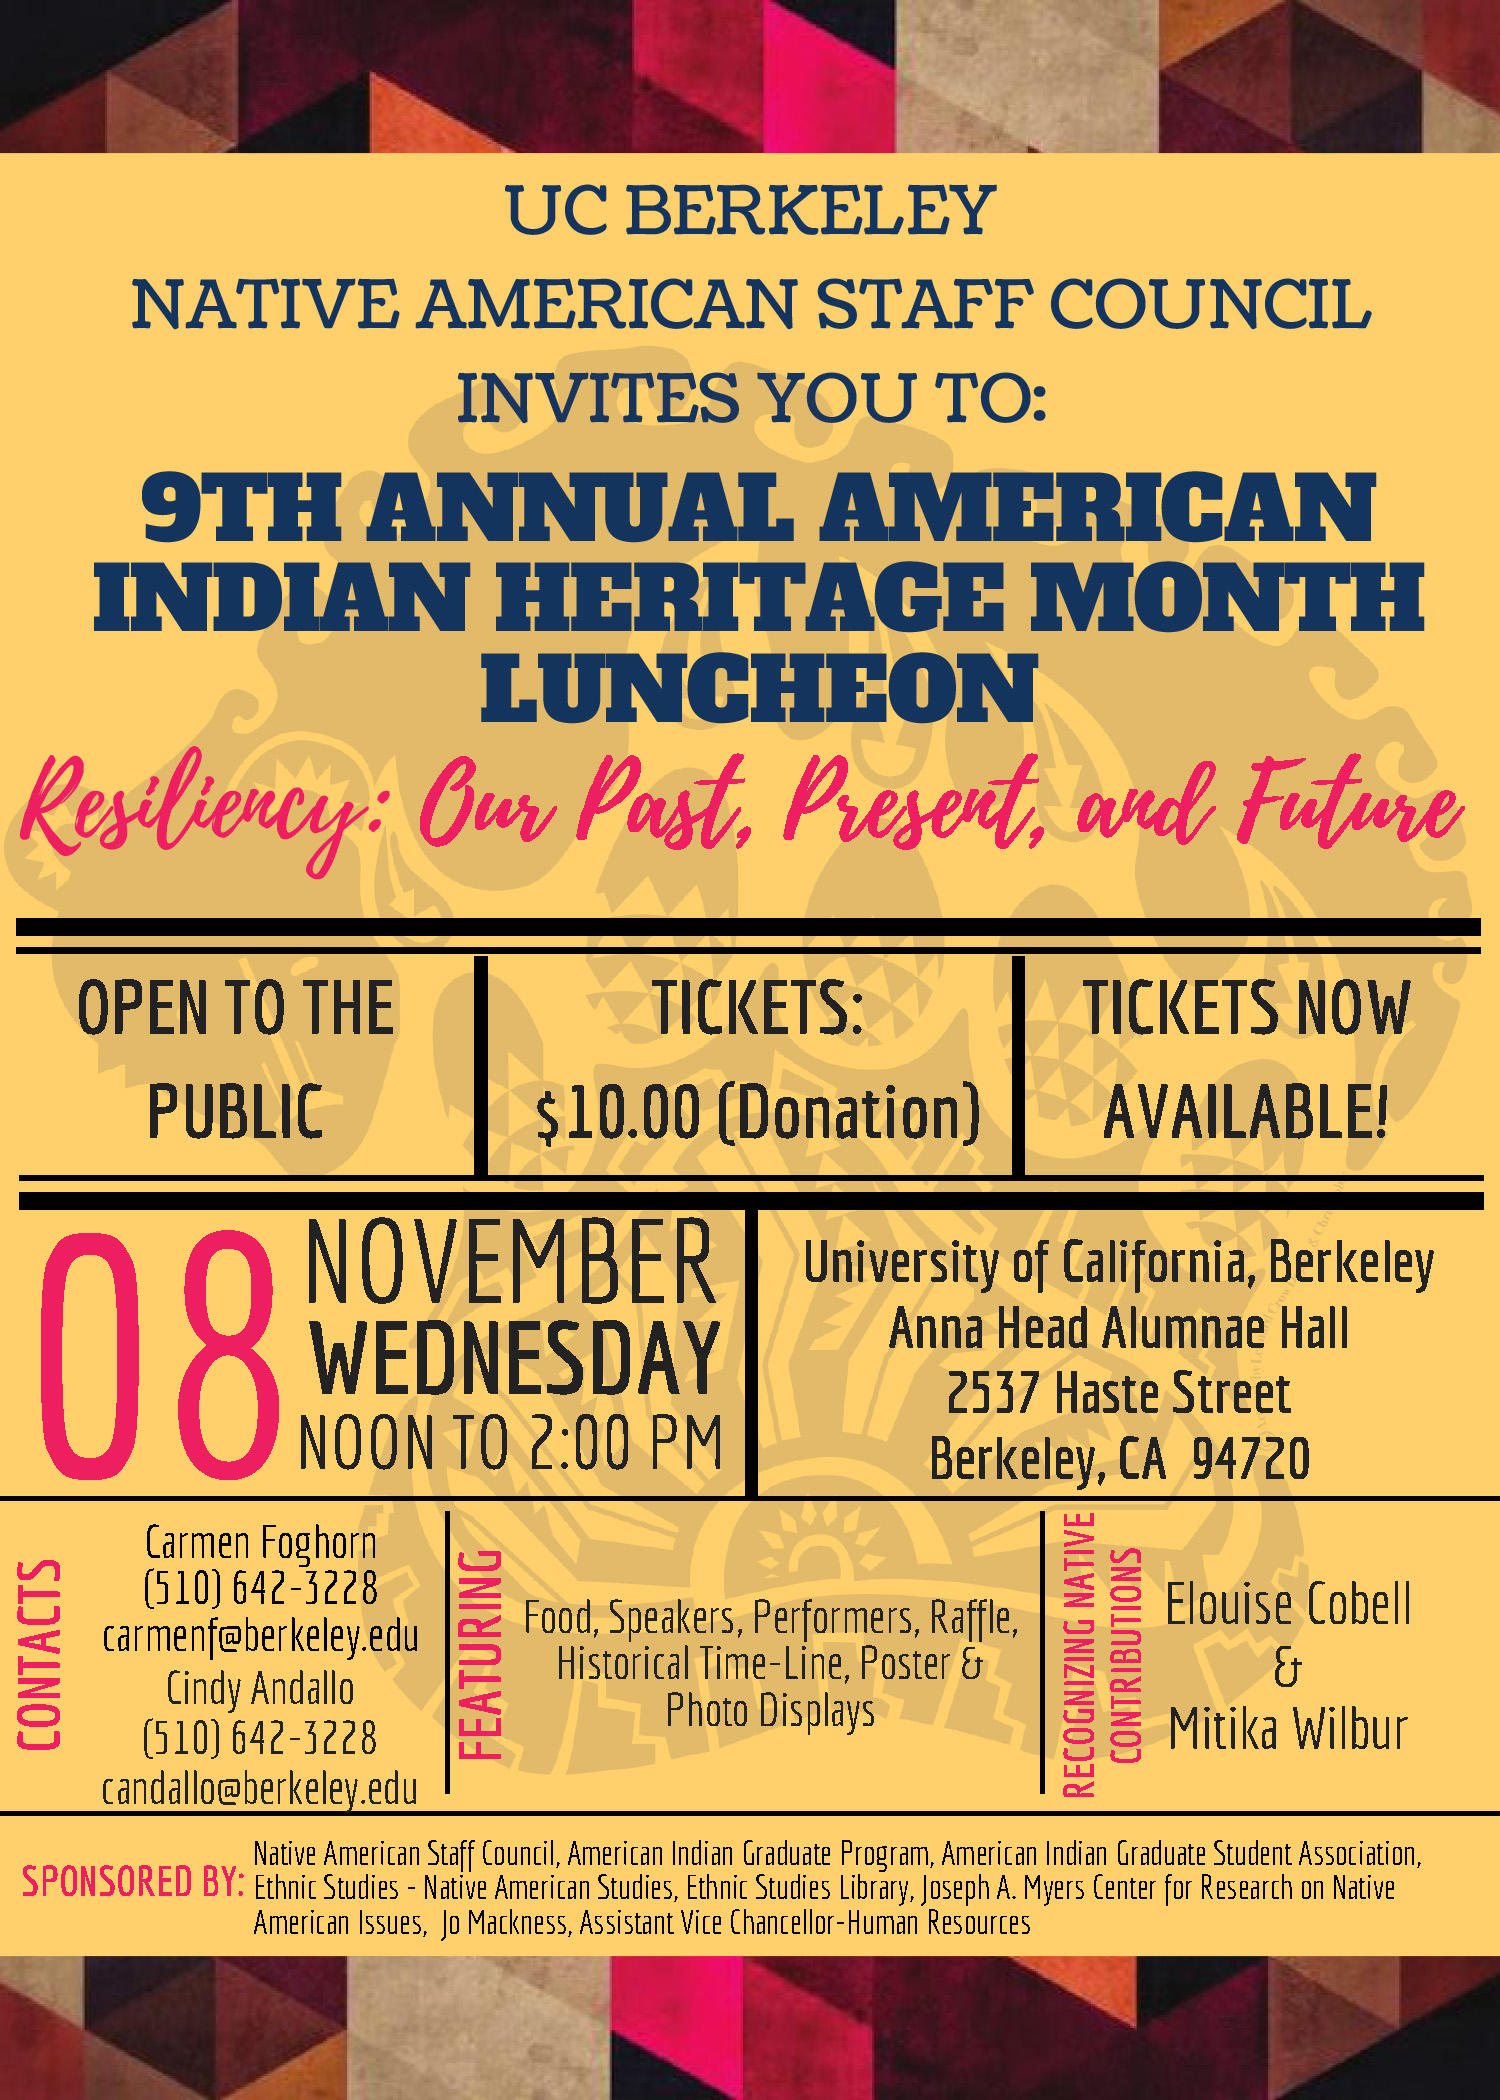 American Indian Heritage Month Luncheon